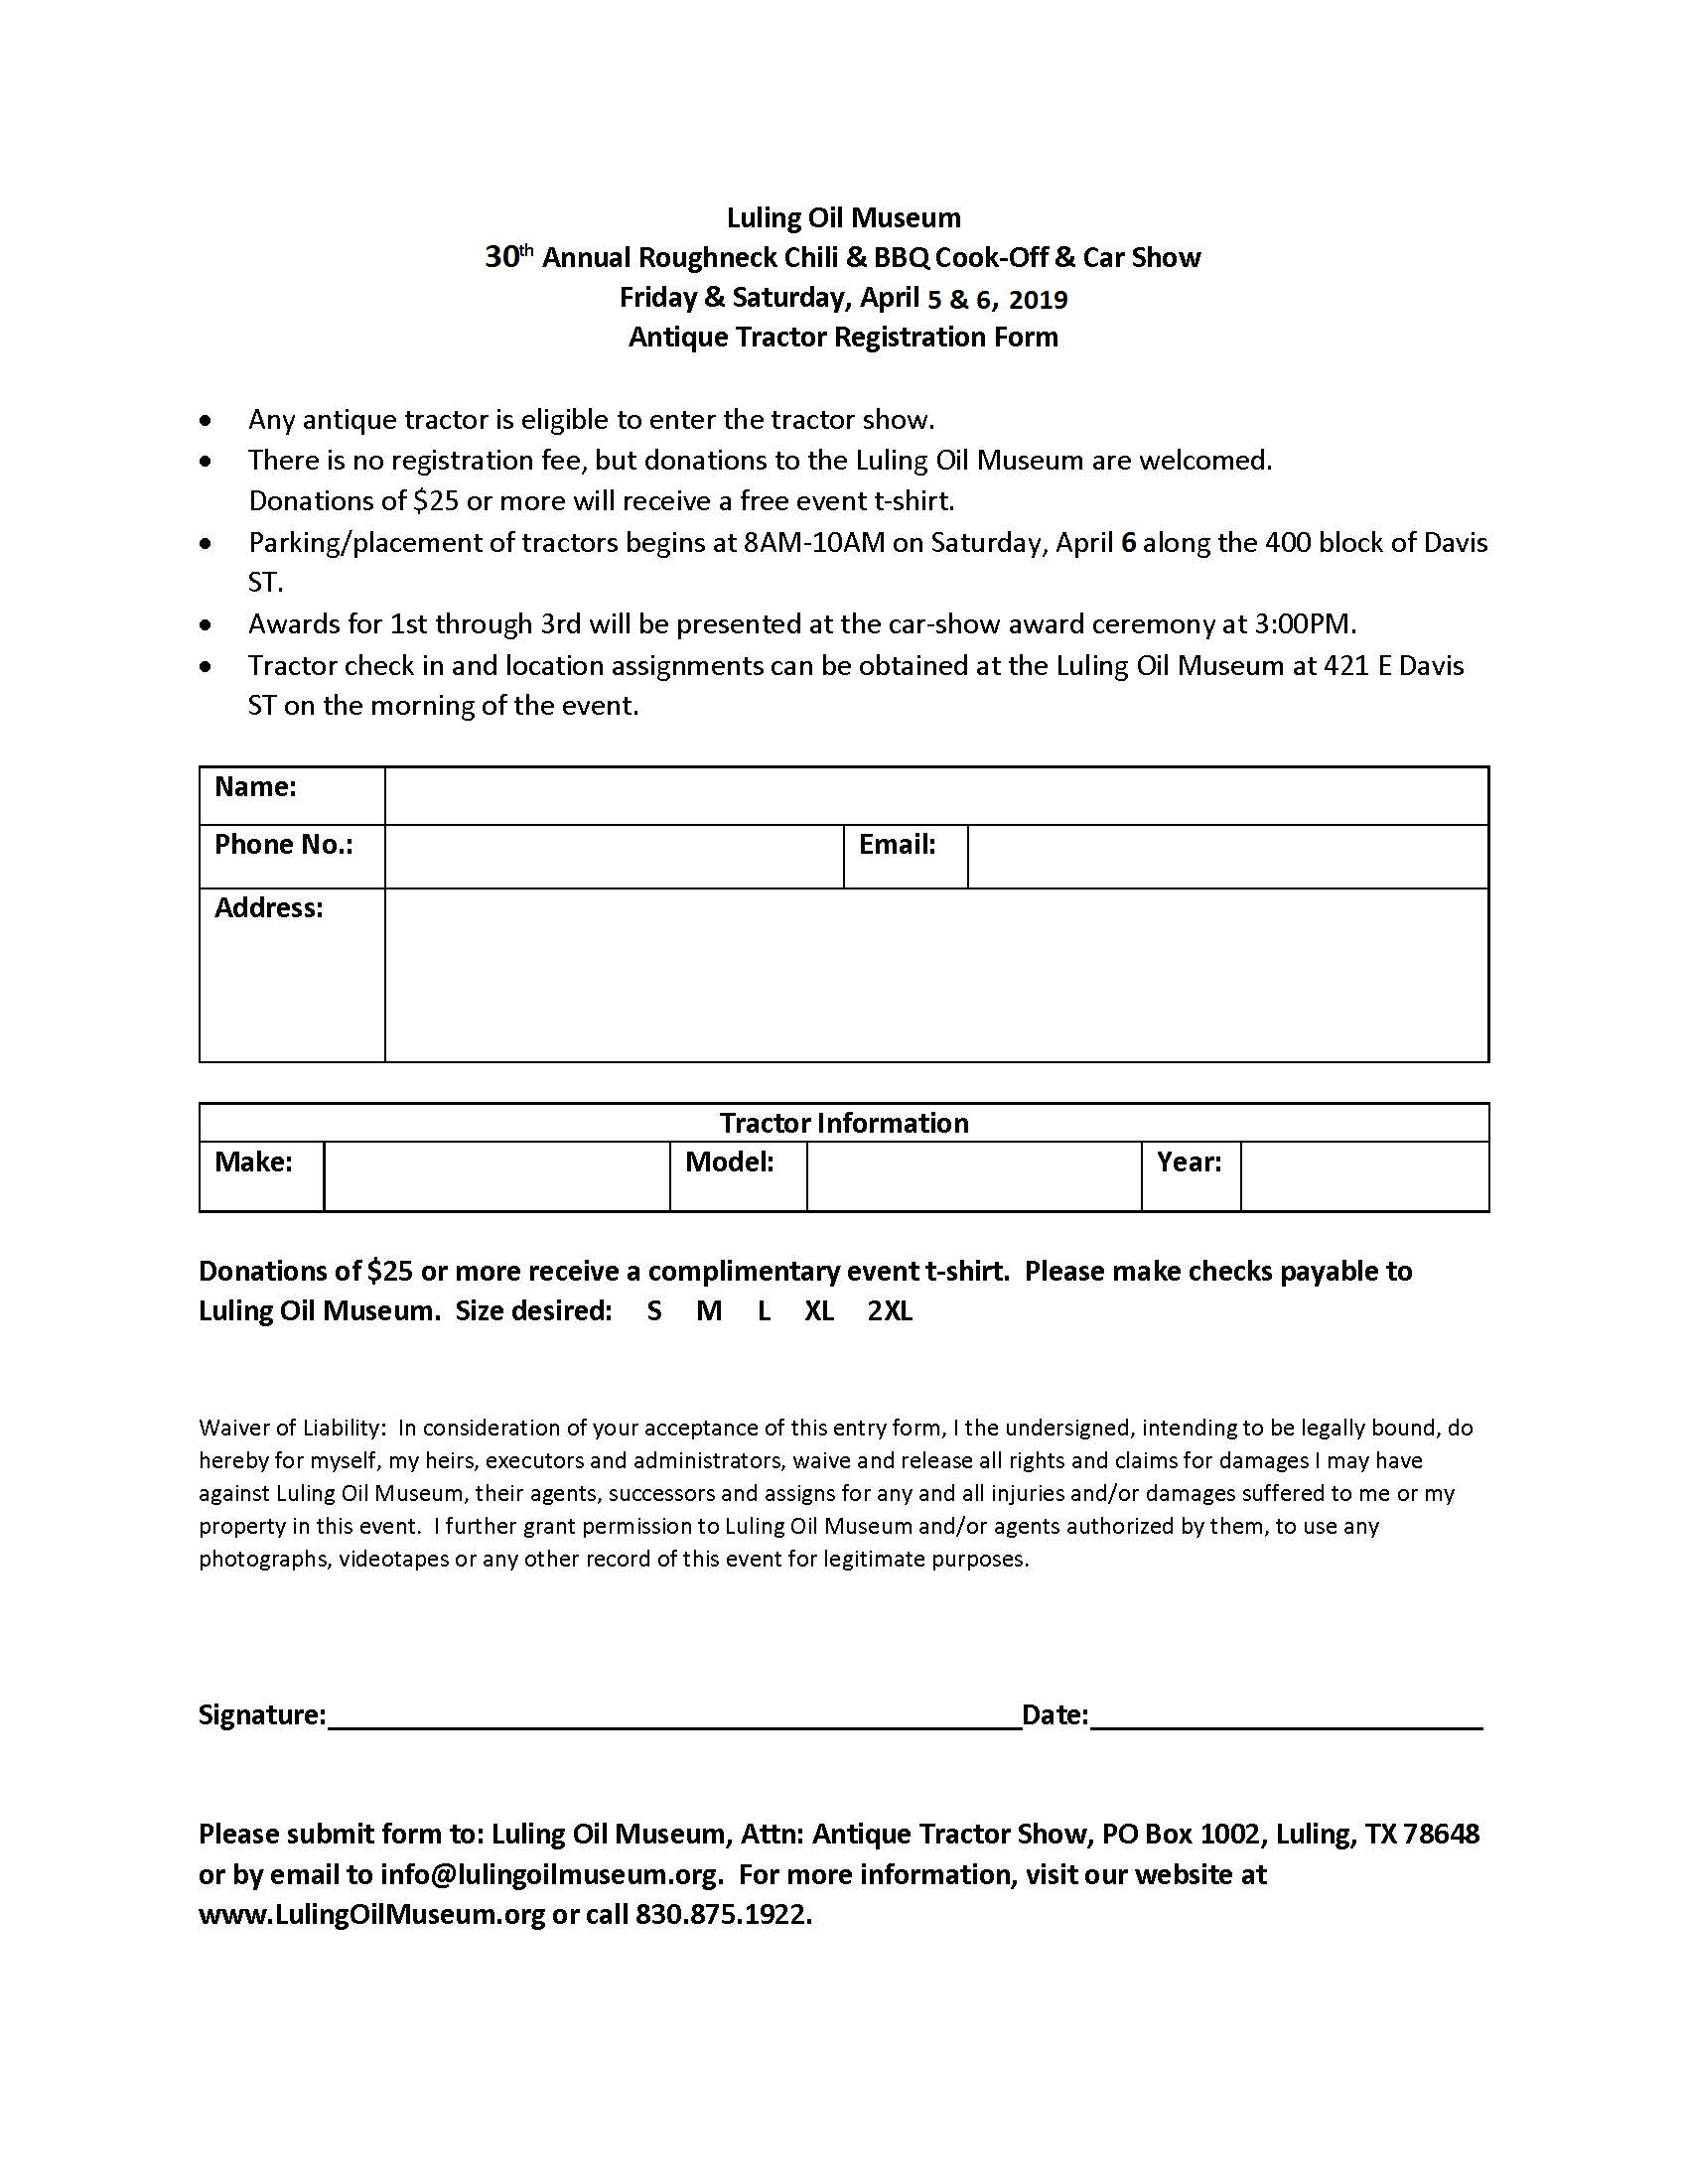 Luling Oil Museum – Form Download Center